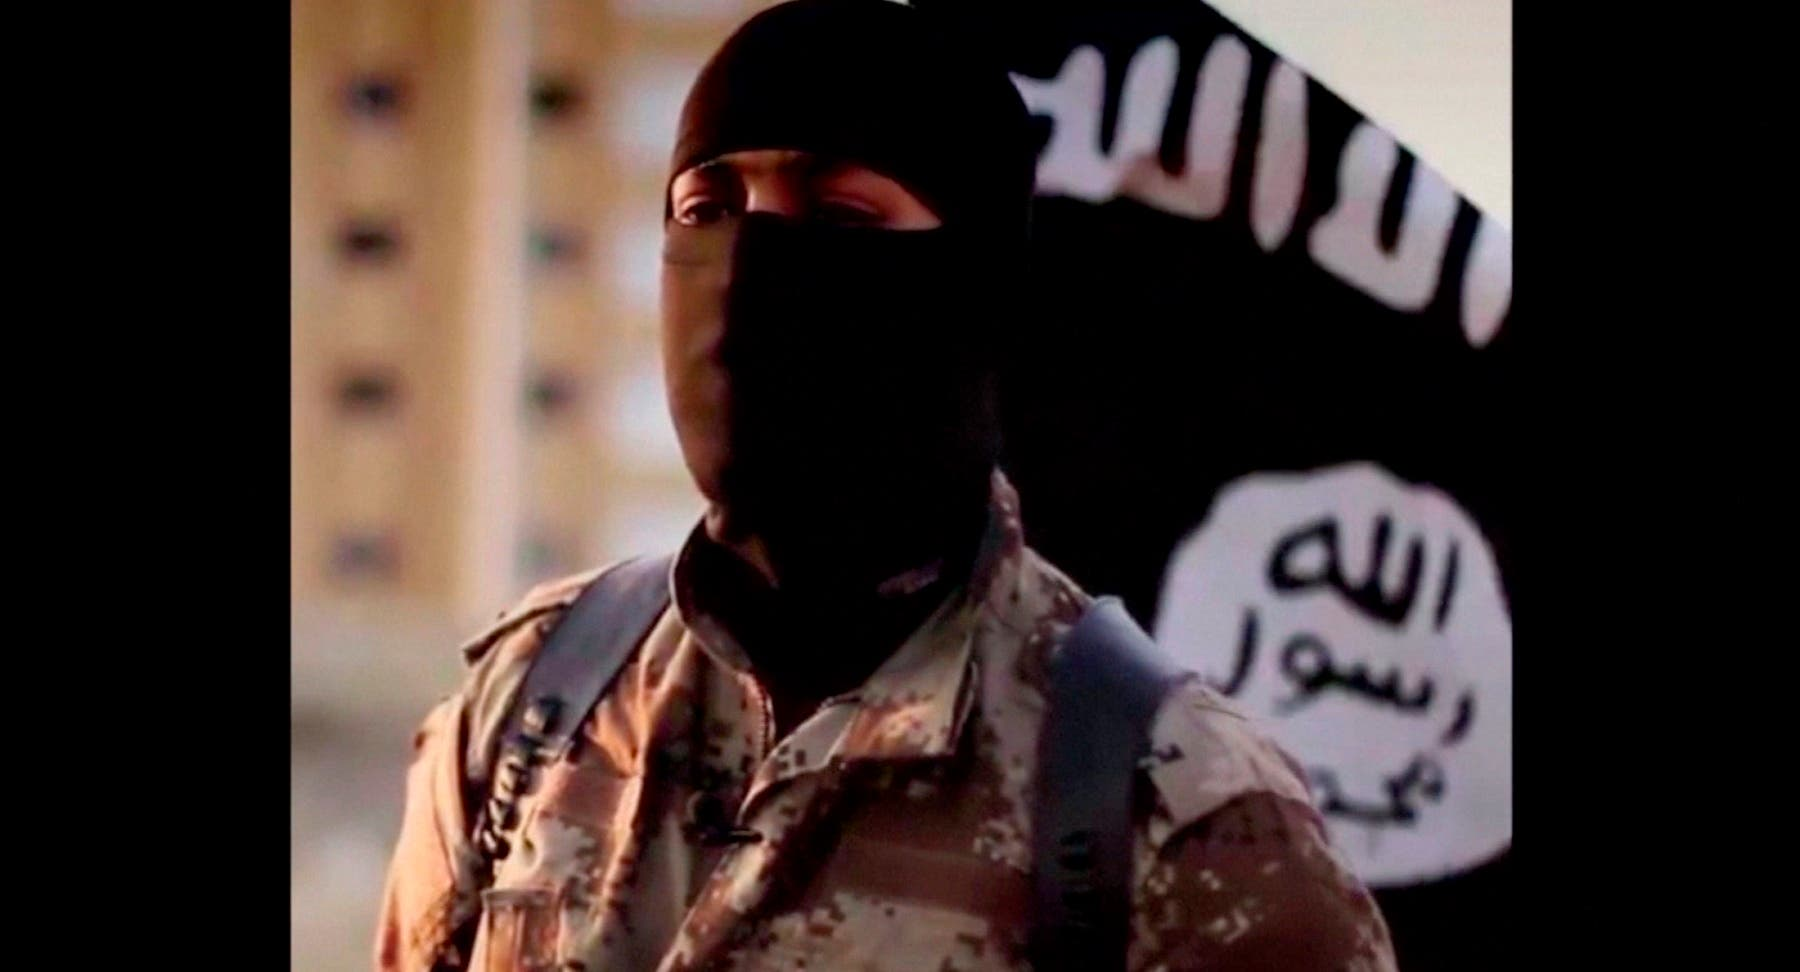 A masked man speaking in what is believed to be a North American accent in a video that ISIS released in September 2014 is pictured in this still frame from video obtained by Reuters October 7, 2014. (Reuters)